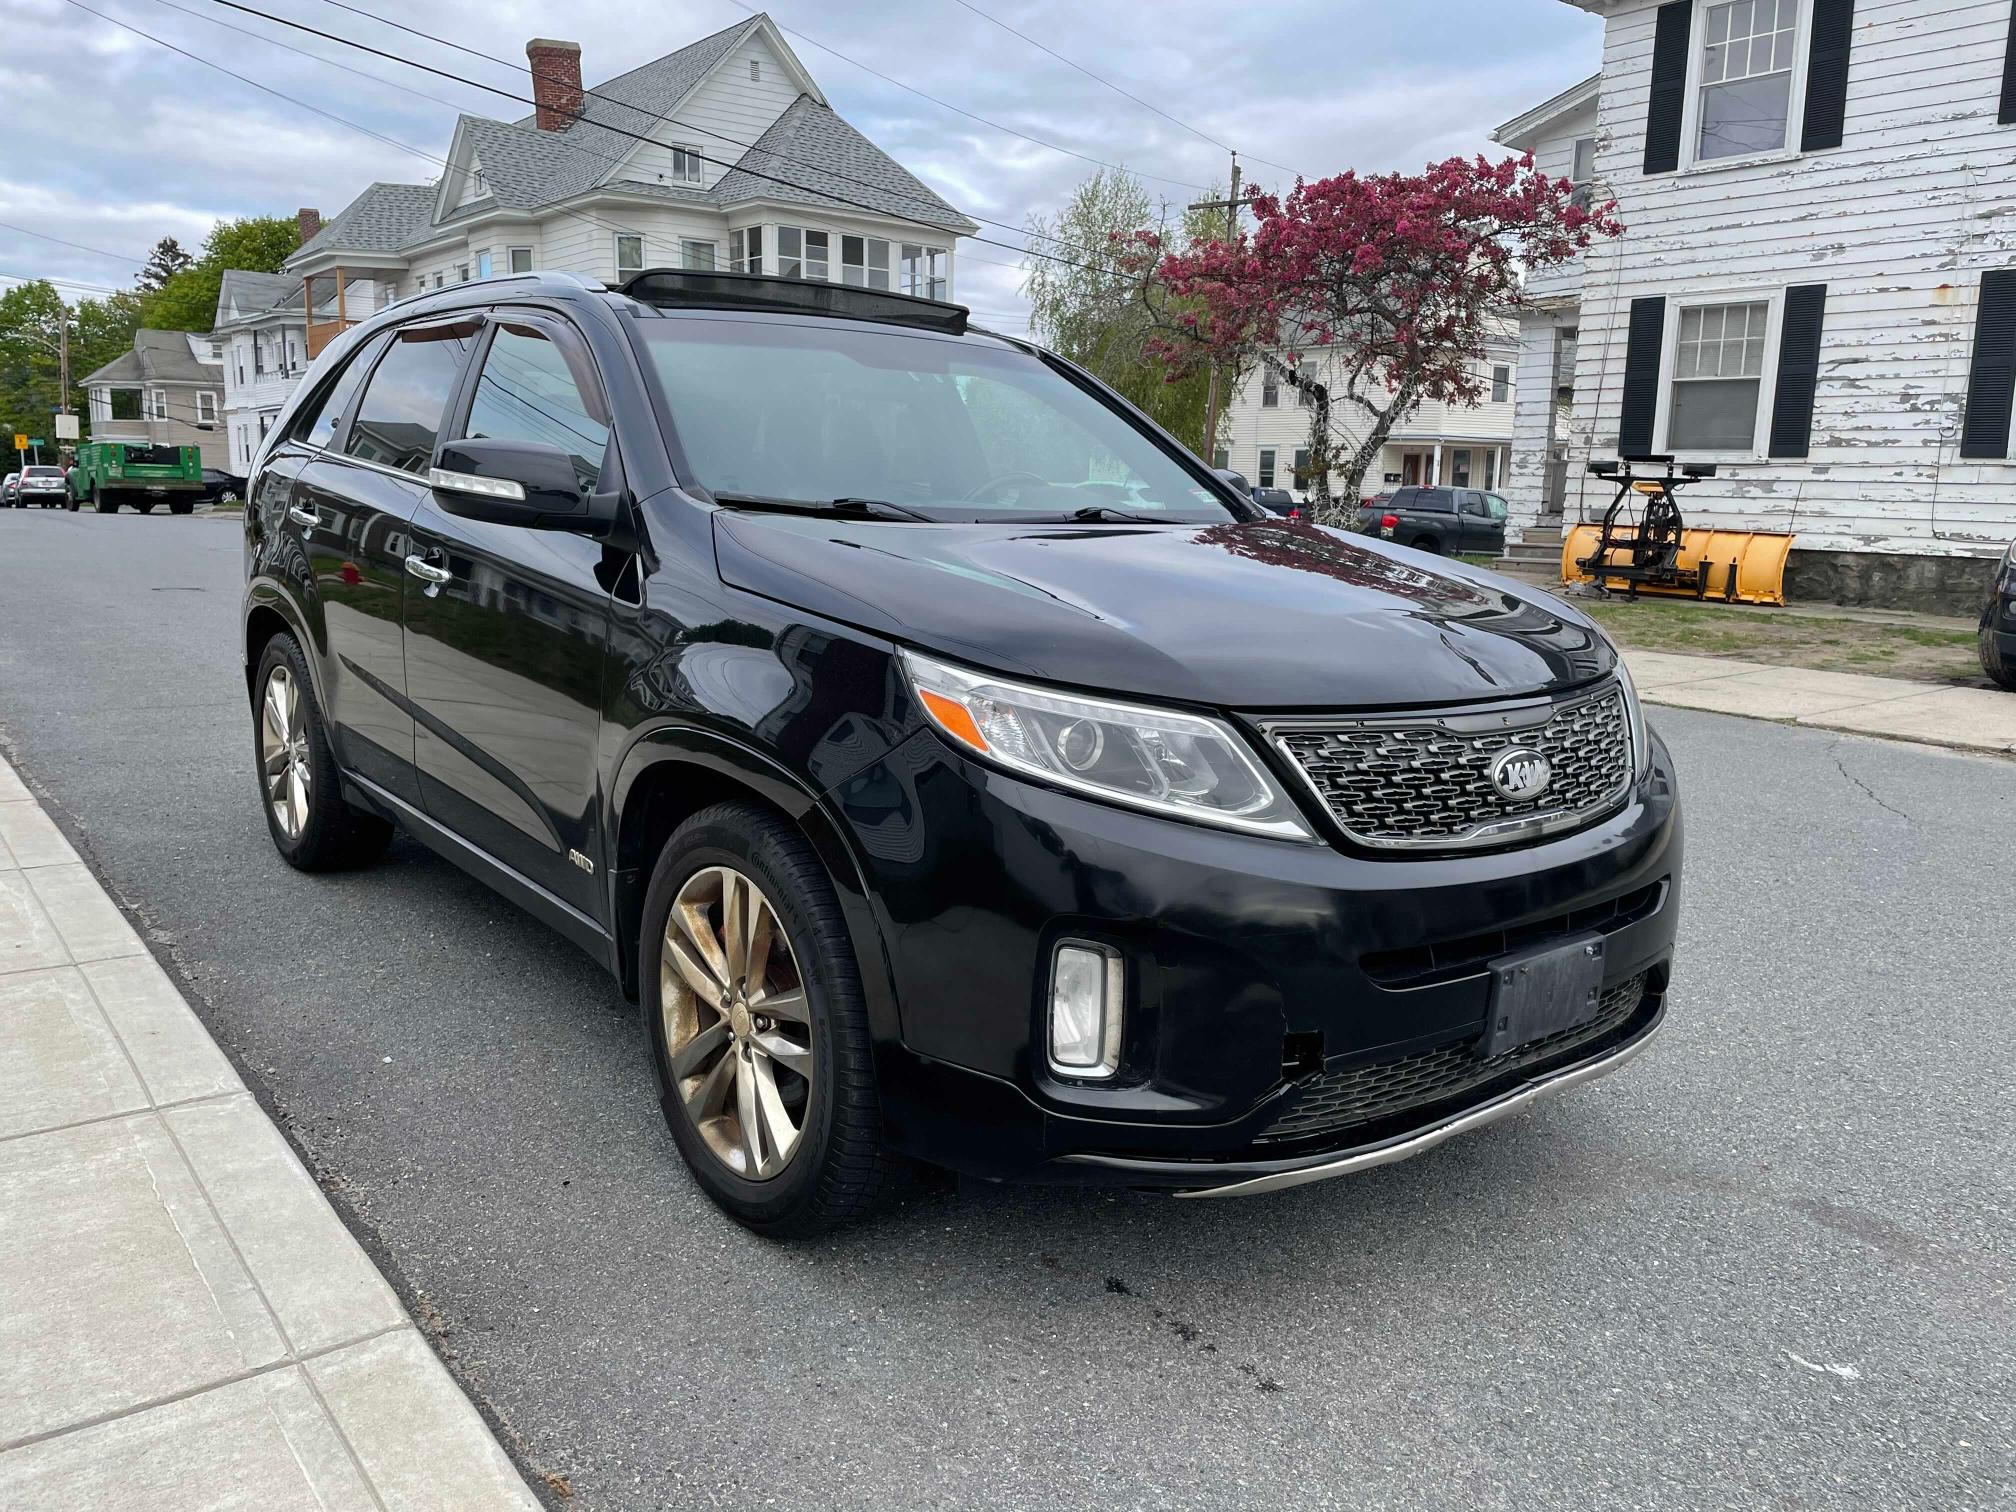 2014 KIA Sorento SX for sale in North Billerica, MA